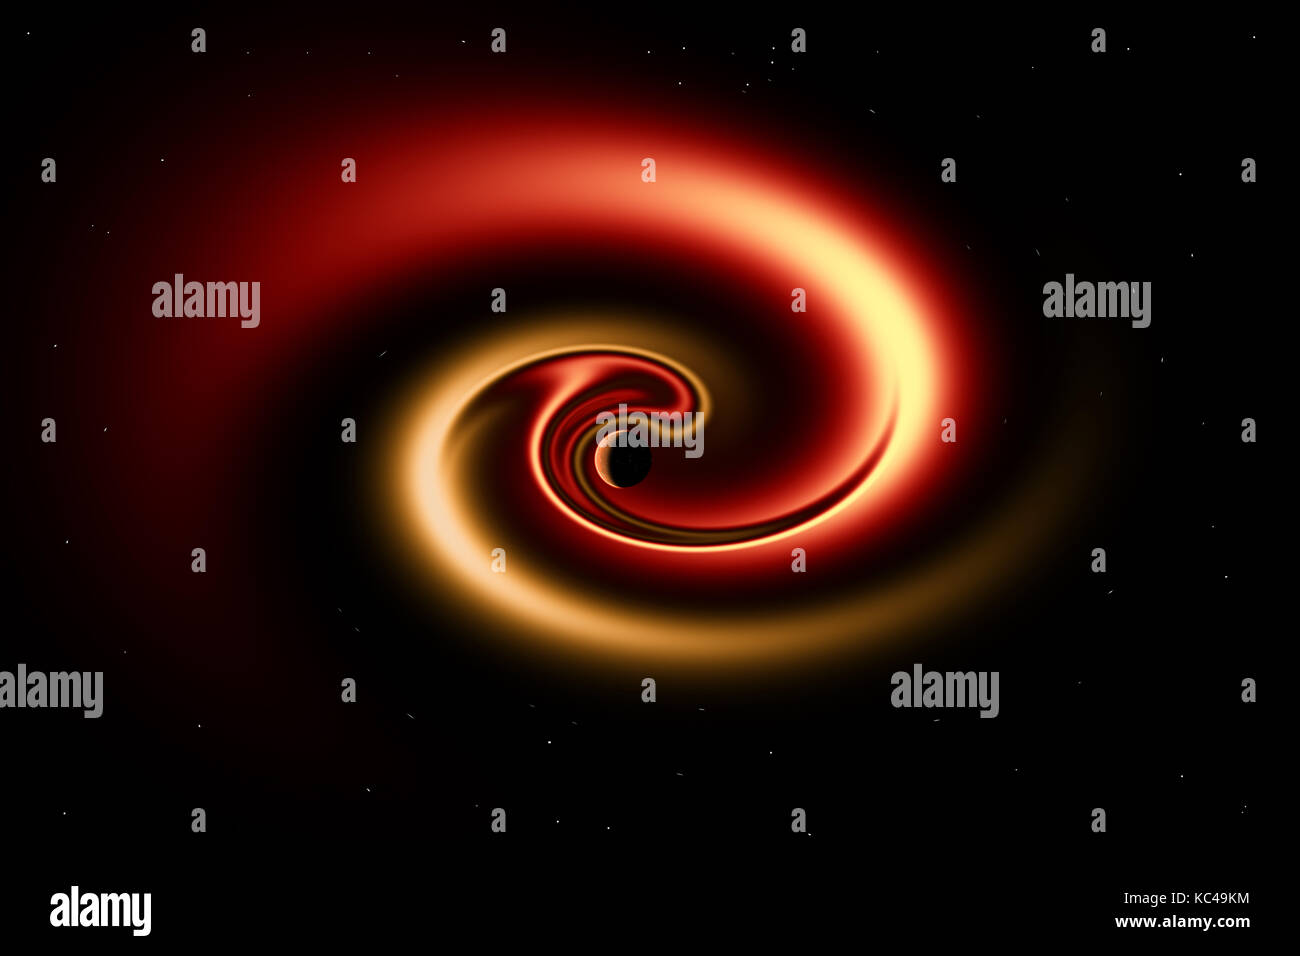 A Rogue Planet Being Pulled Into A Black Hole - Stock Image